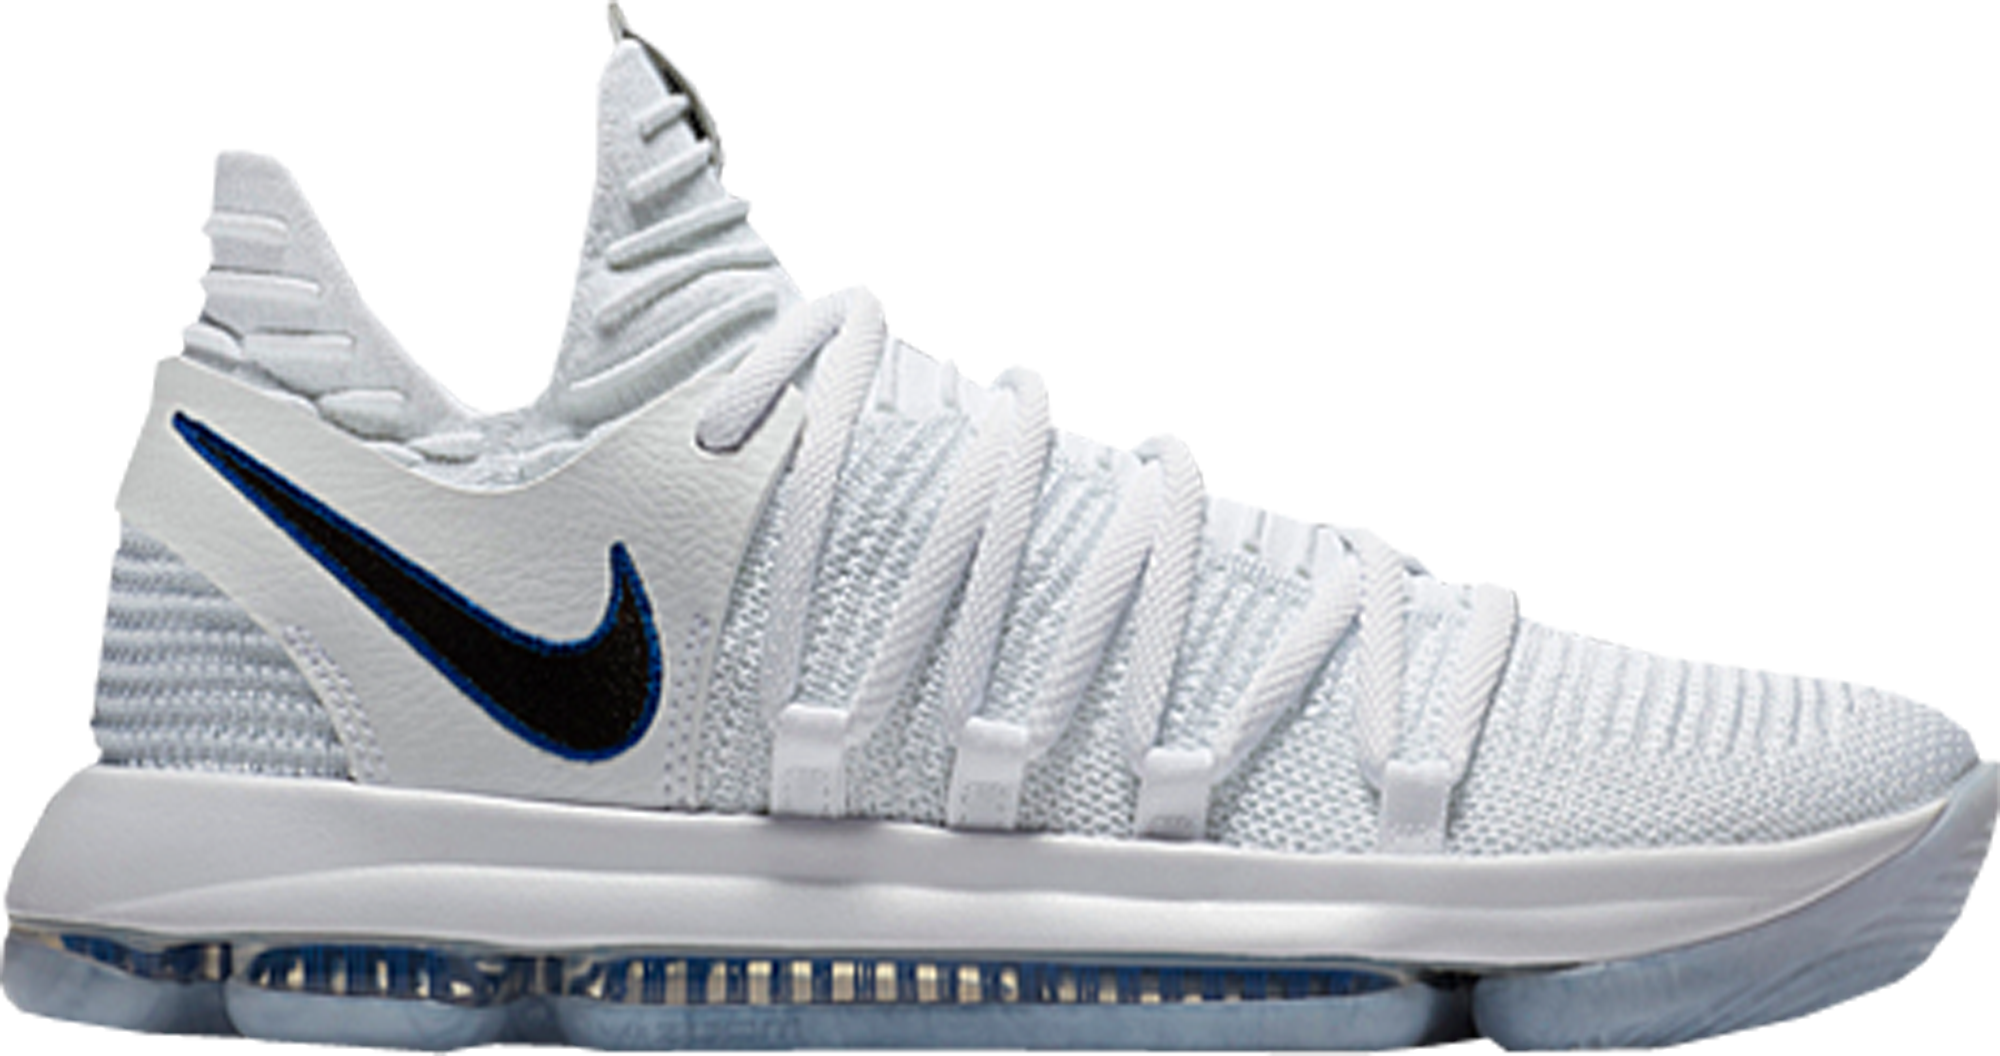 KD 10 Numbers